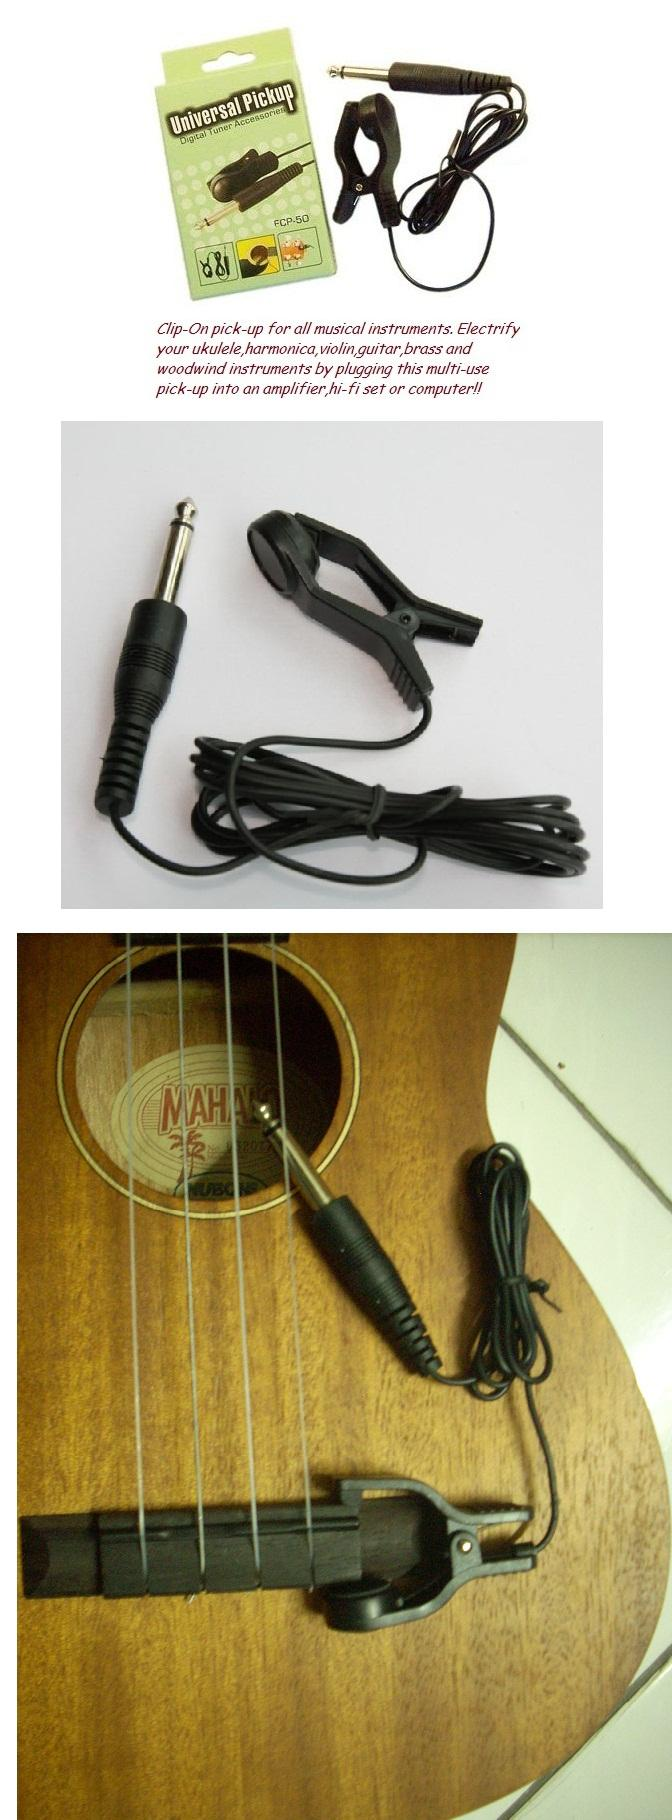 Universal Clip-on Pick-Up**Electrify Your Ukulele,Guitar,Harmonica,etc